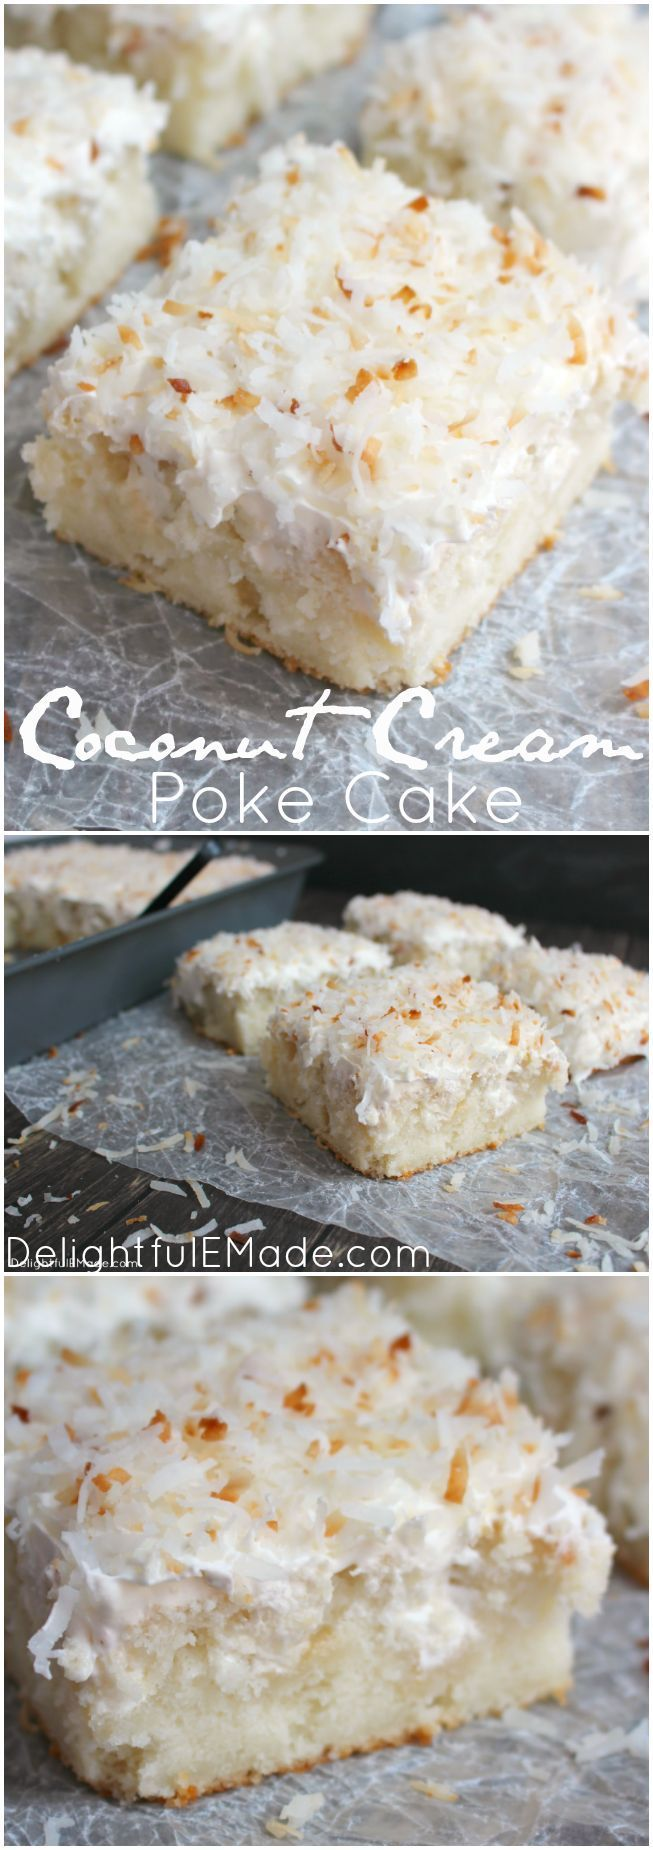 A dreamy, delicious coconut cake that will have you coming back for seconds!  Creme of coconut is baked into a fluffy white cake making it super moist.  The cake is then topped with coconut whipped cream and toasted coconut for the ultimate coconut treat!